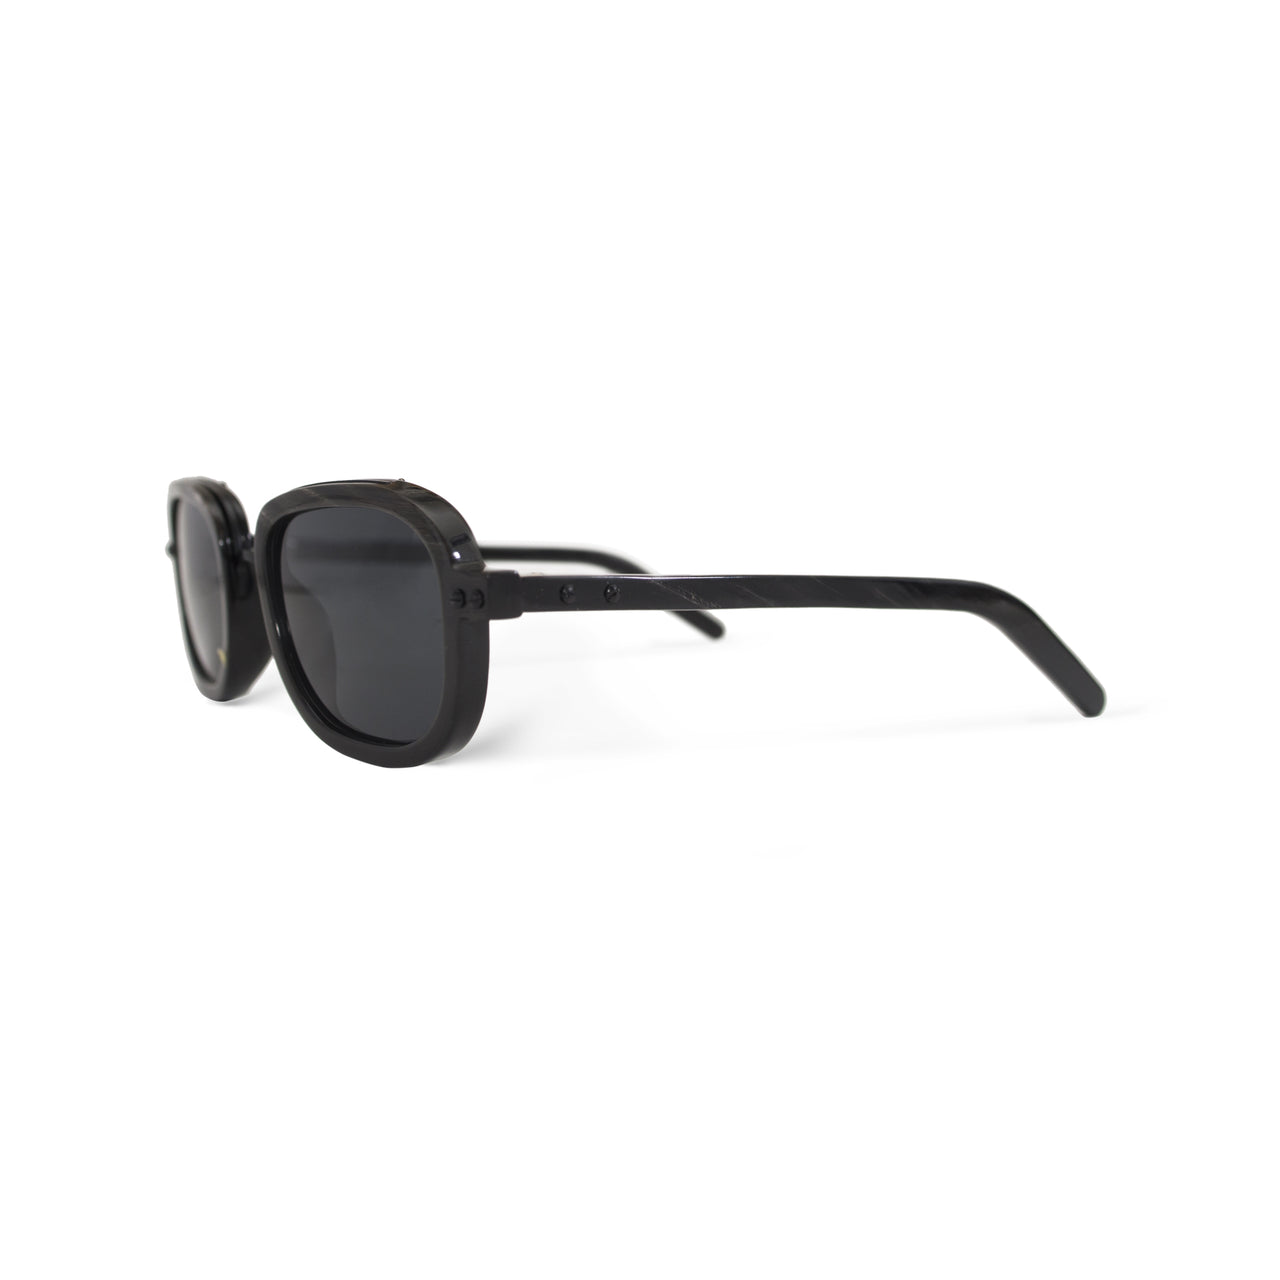 Horn. Dark. Black Lens. - BLYSZAK eyewear eyewear - eyewear, optical, sunglasses